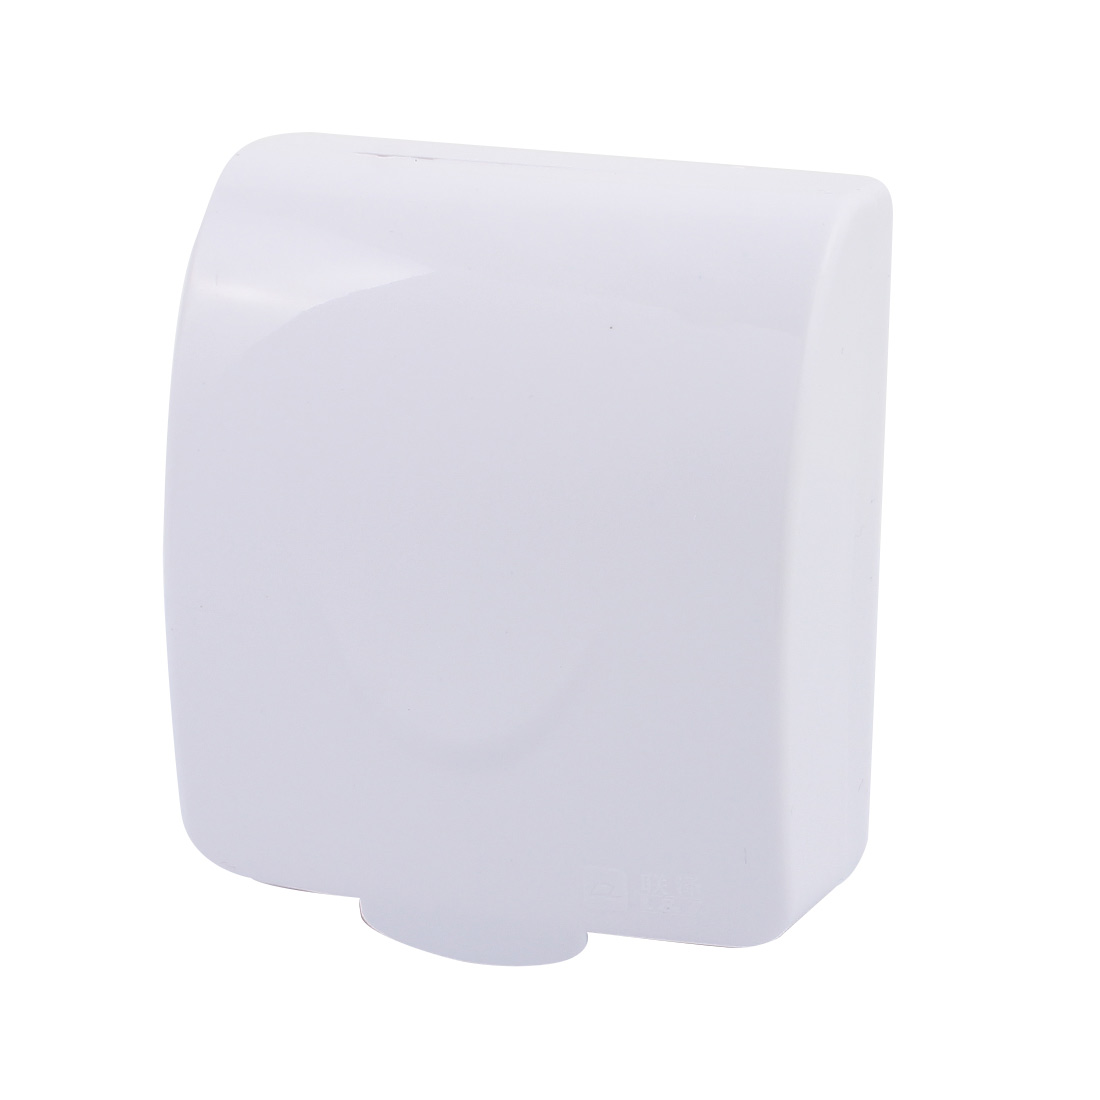 White Plastic Thickened Water Resistant Rocker Switch Socket Protect Cover Cap